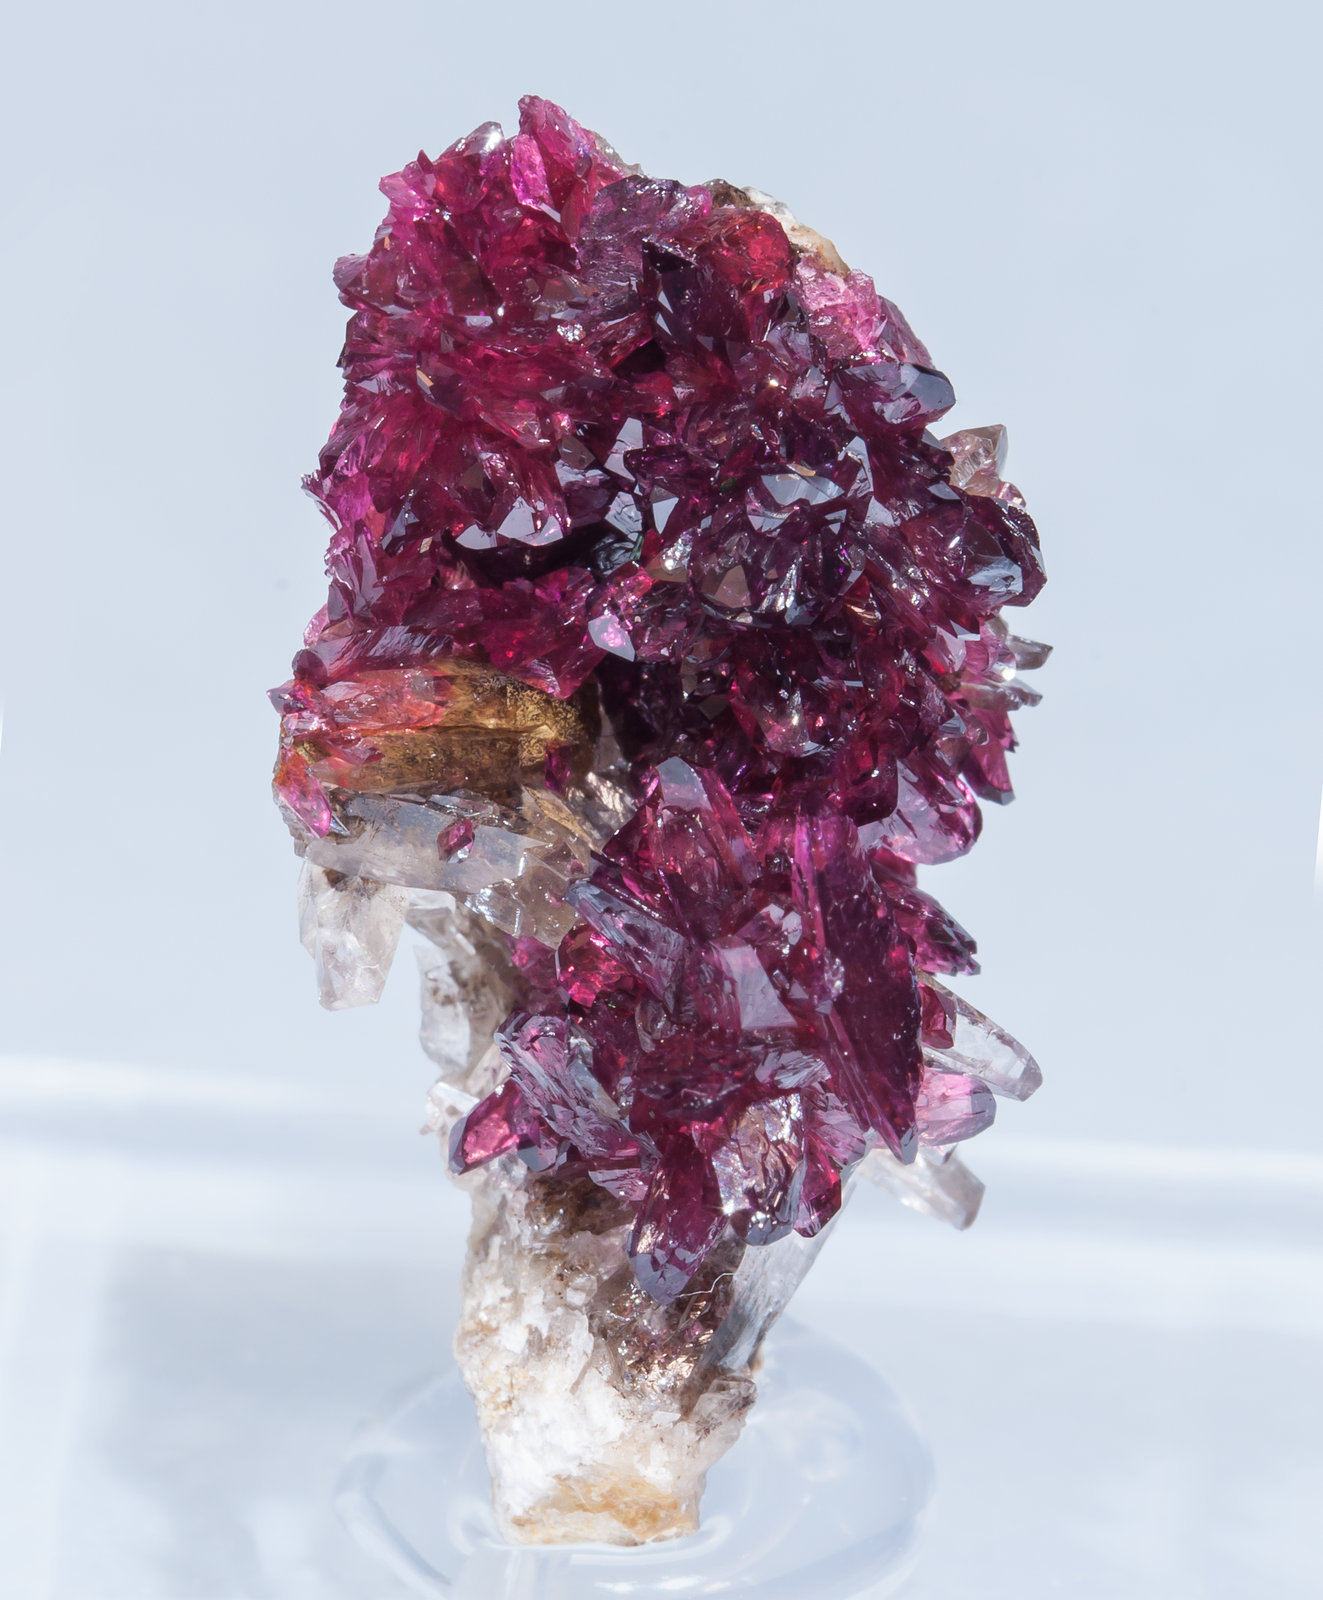 specimens/s_imagesAK3/Roselite-ML6AK3f.jpg